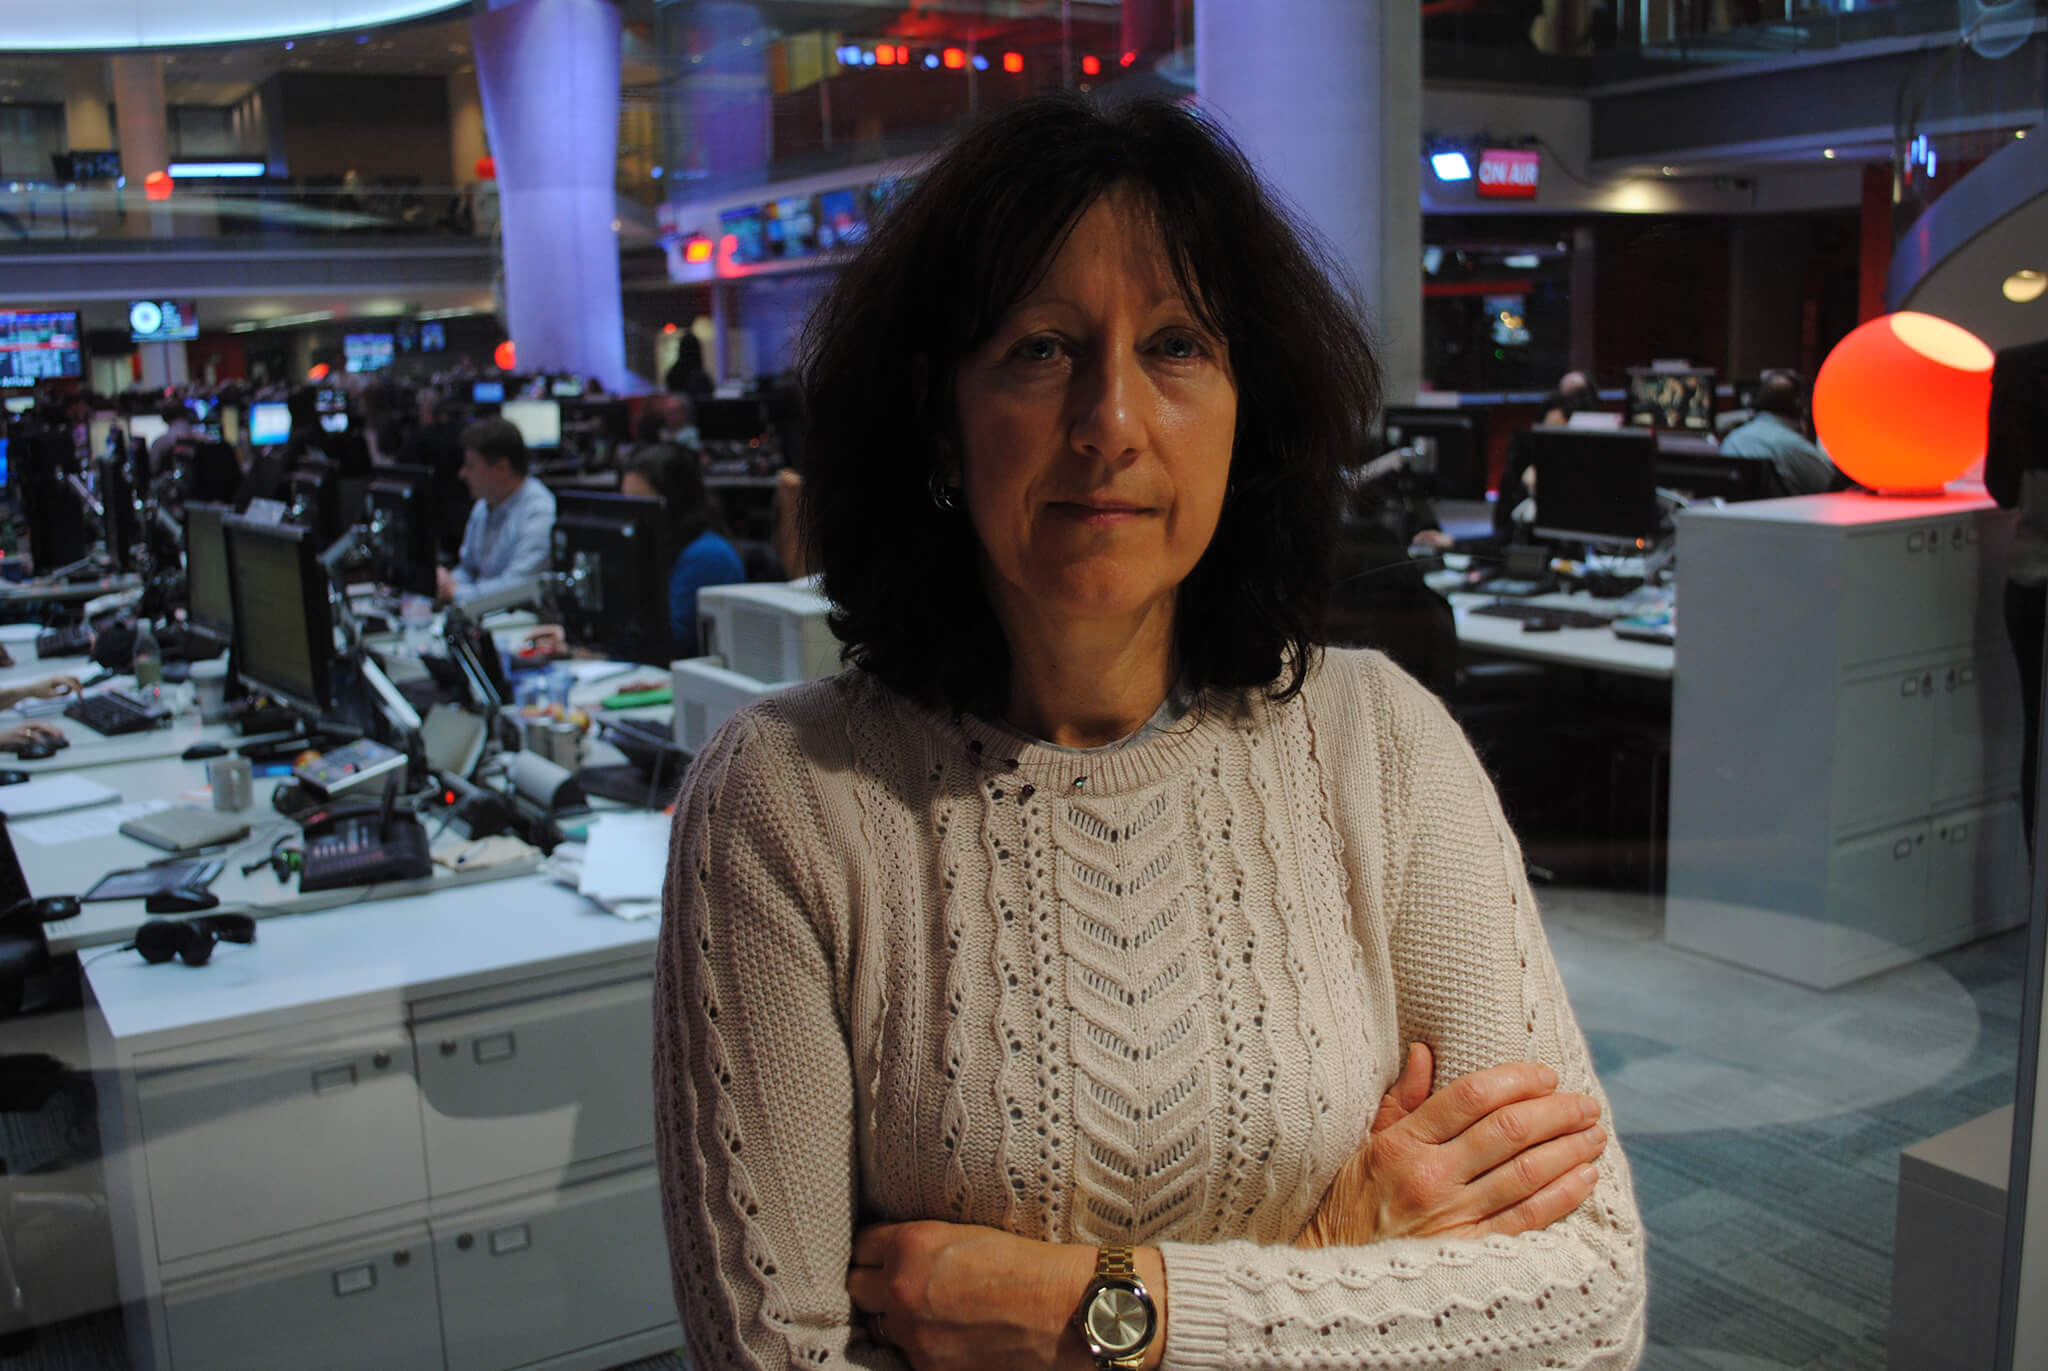 Stella Tooth Artist in BBC Newsroom where she worked in a previous career in broadcast news PR.